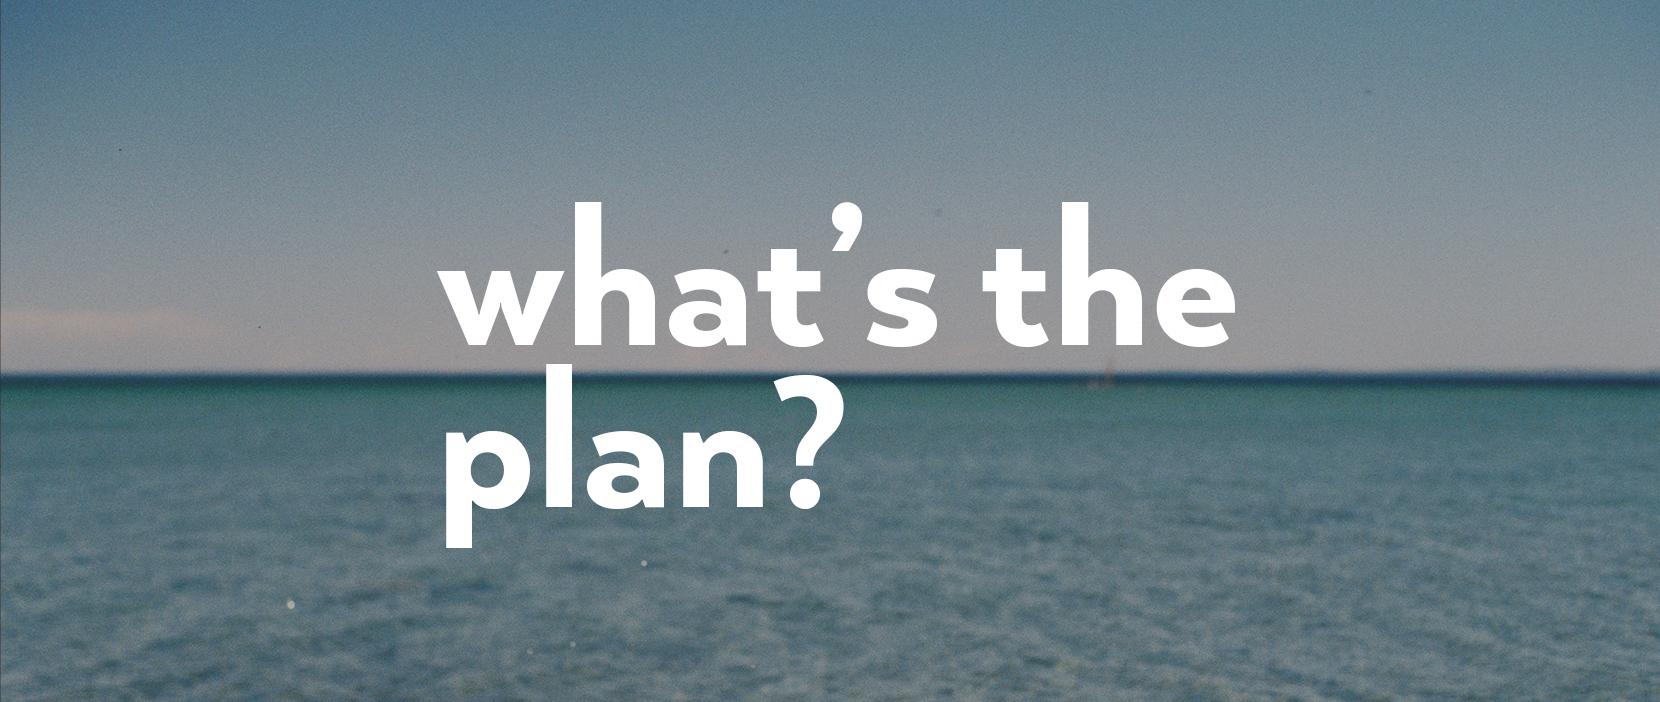 Featured Image for What's the plan?